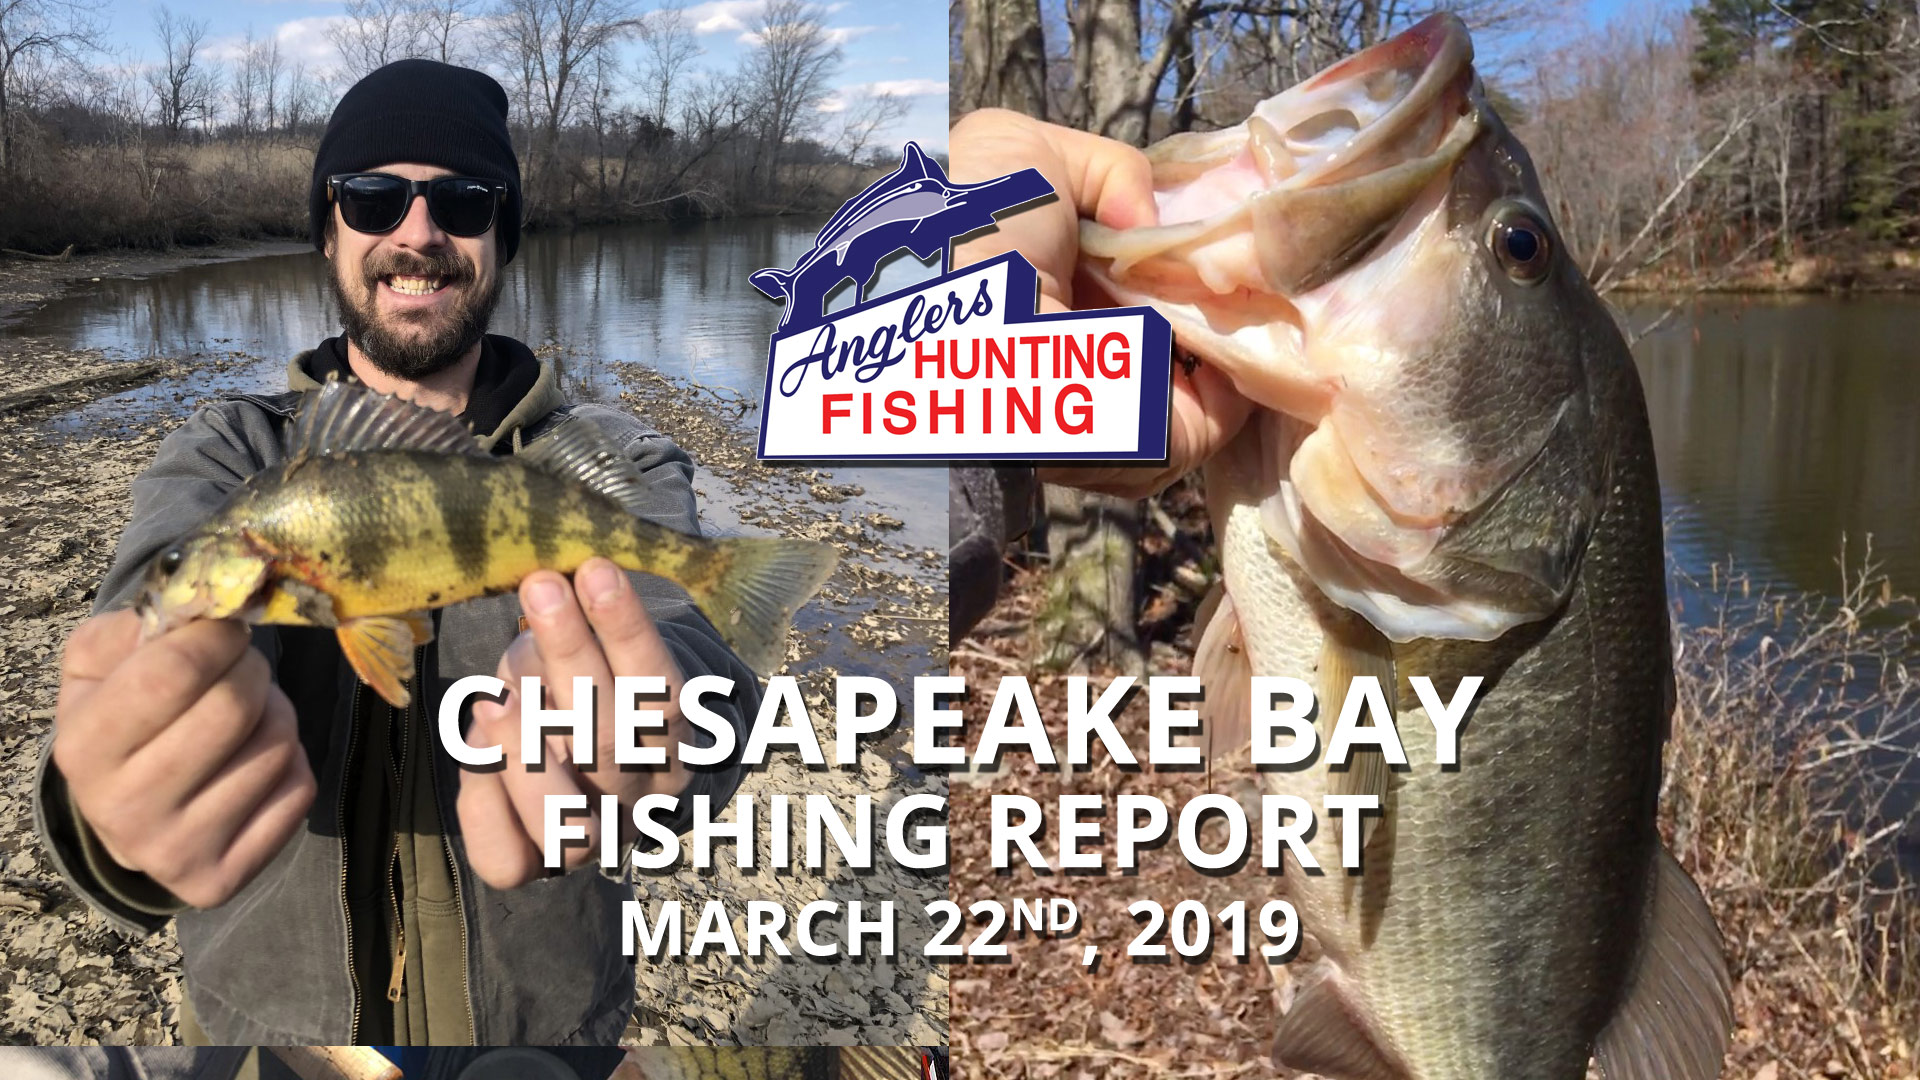 Chesapeake Bay Fishing Report - March 22nd, 2019